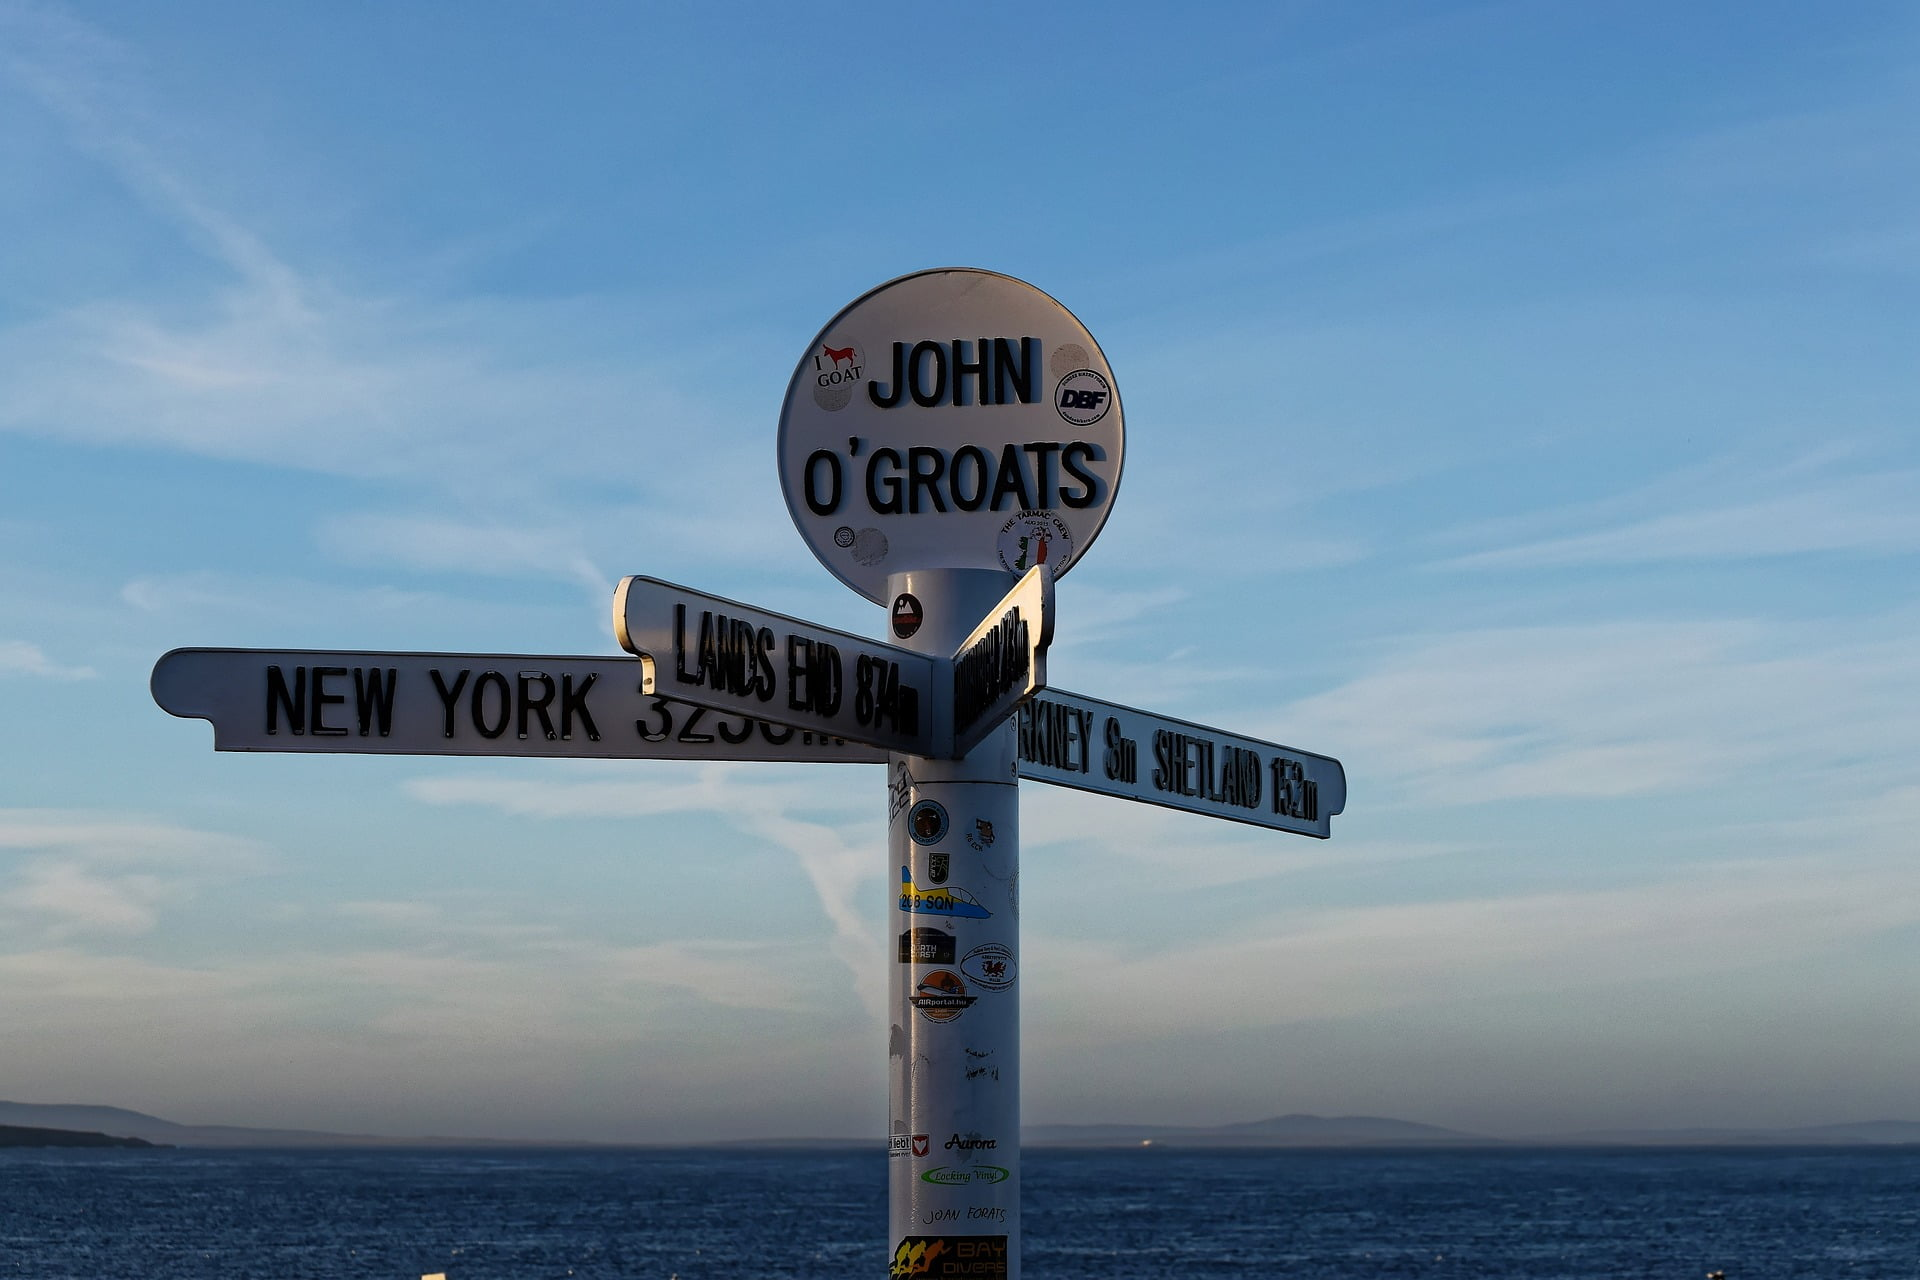 Our NC500 the North East day Tour takes you to the John O' Groats sign, which is the subject of this shot. A little of the sea is showing, dark blue, at the bottom of the picture. Two headlands show, distant and low, to the left hand side, and some islands on the far horizon on the right hand side. The sky is blue. The obvious subject, dominating the picture, is the close up view of the sign. It is a white pole, covered in visitors stickers, surmounted by a disc with the words John O Groats. It has four visible fingersigns pointing out from it, pointing to New York, Lands End, Orkney and Shetland and giving mileages (not all of which are visible).